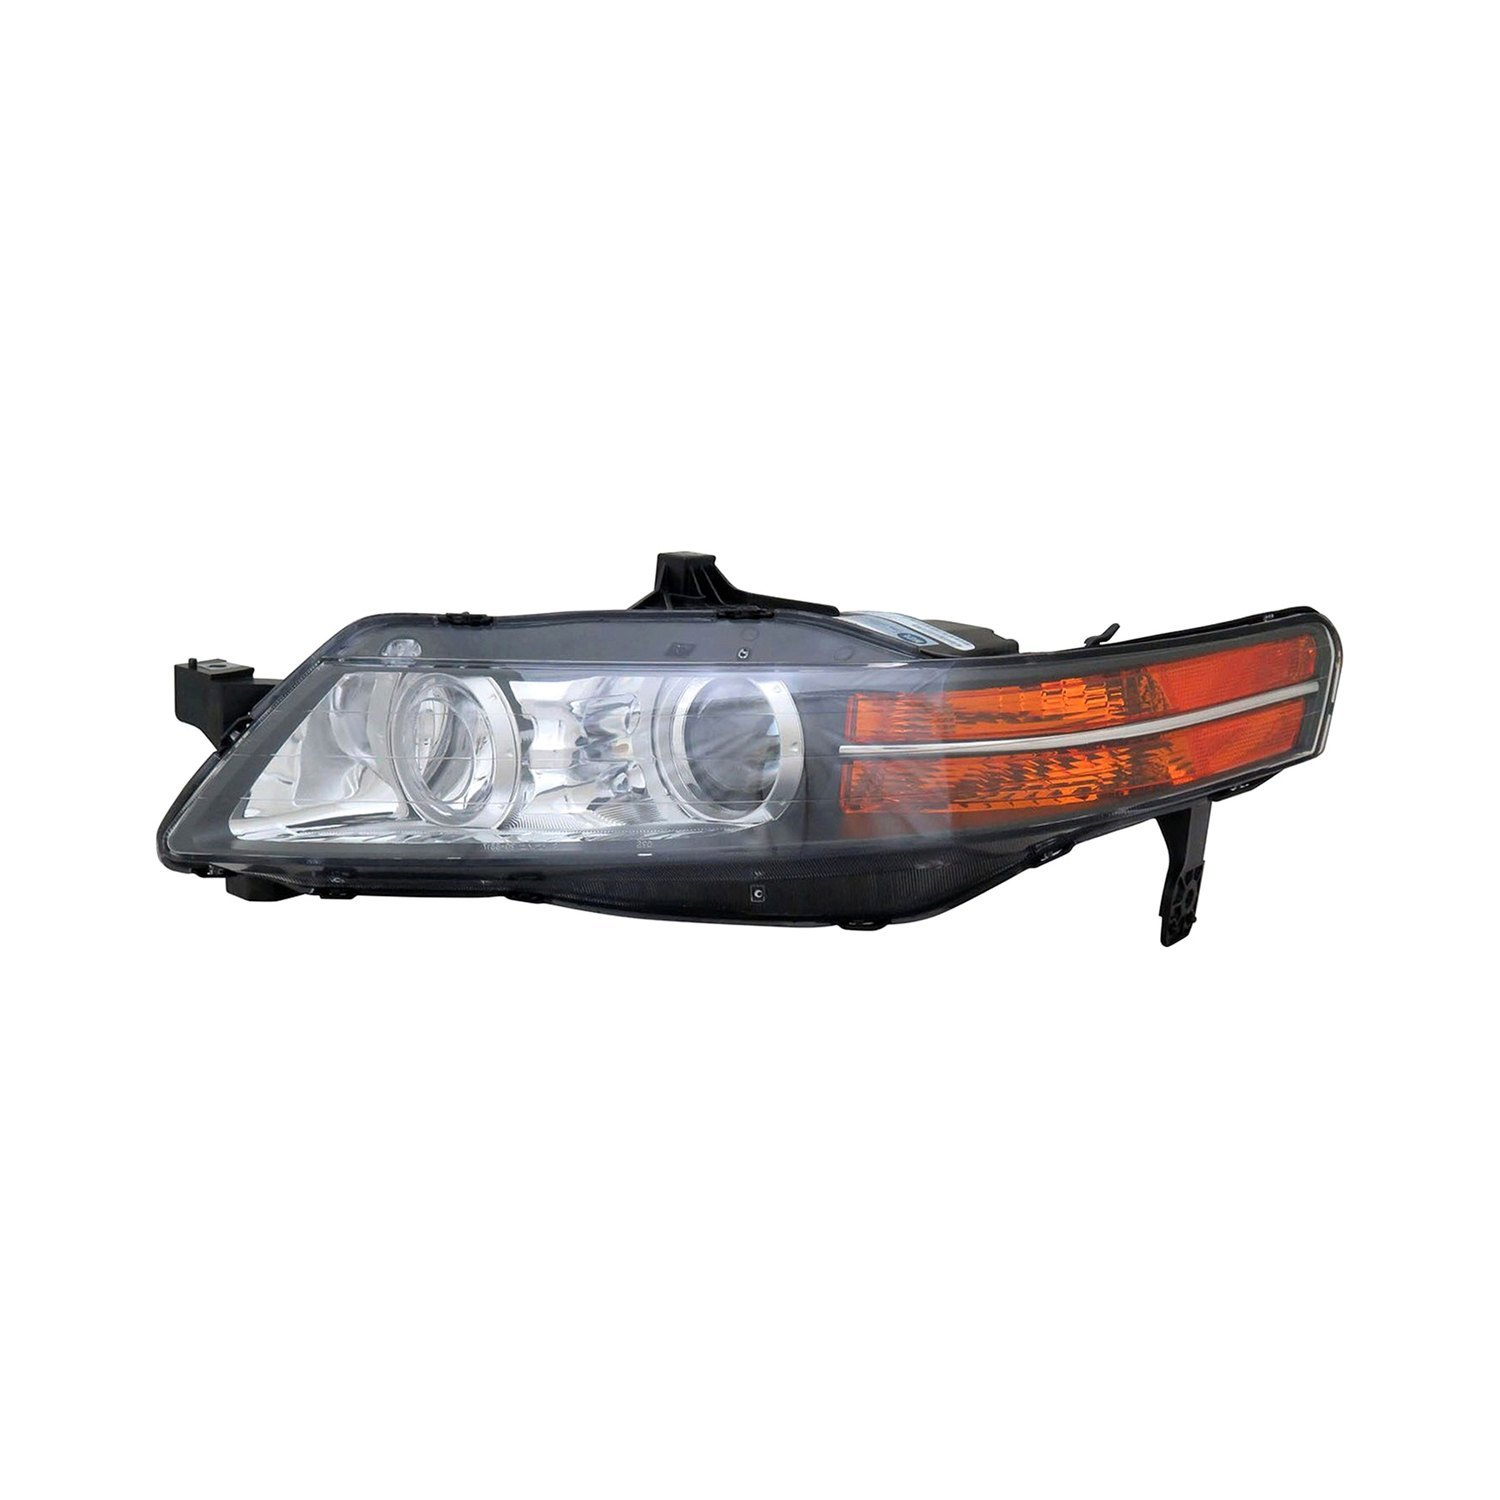 For Acura TL 2007-2008 TYC 20-9350-01-1 Driver Side